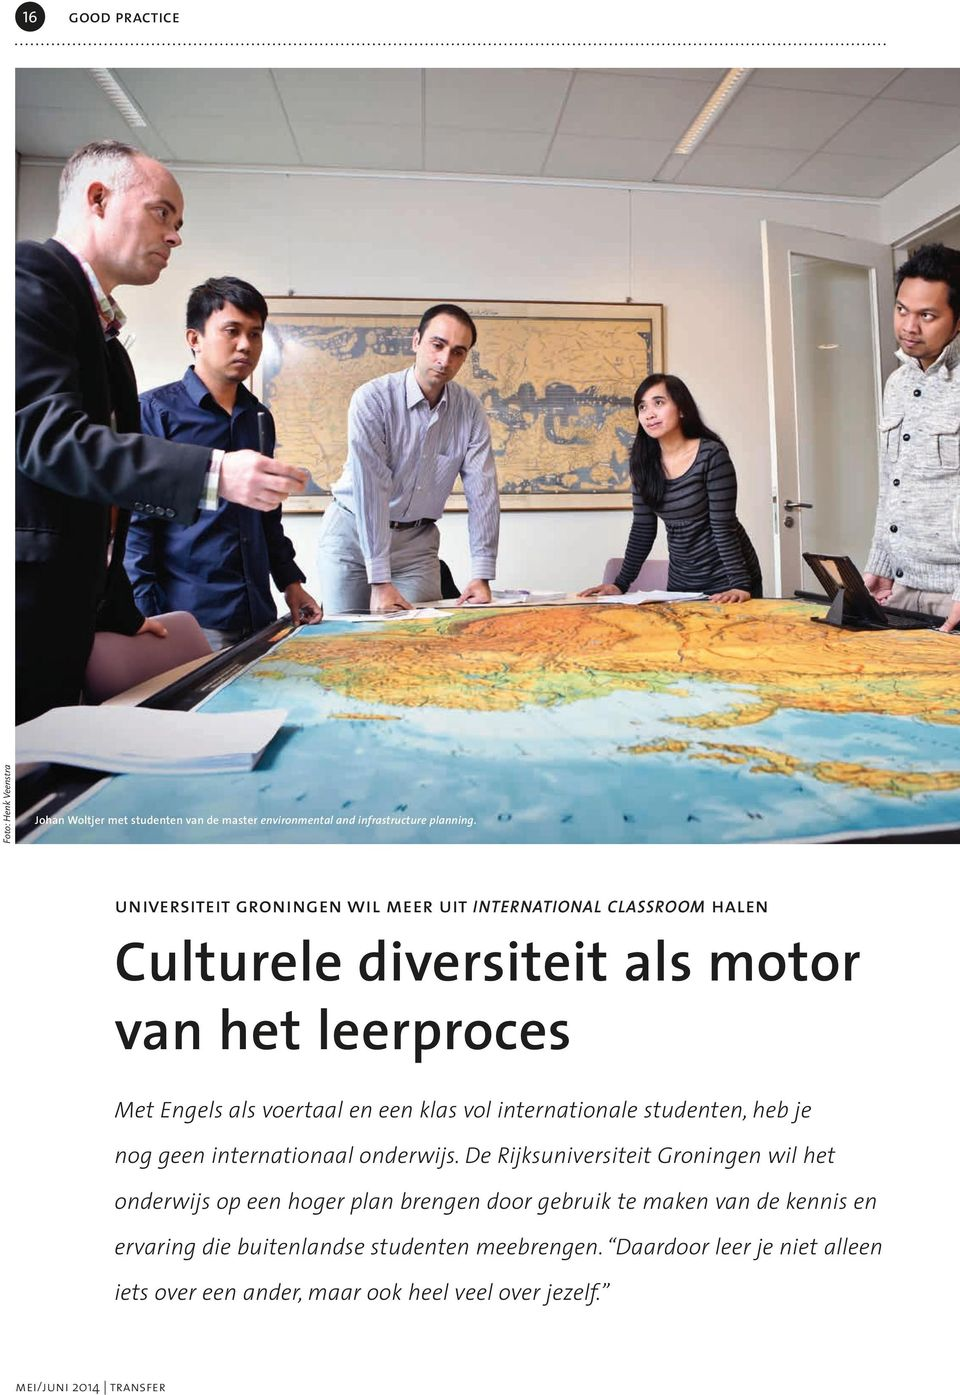 klas vol internationale studenten, heb je nog geen internationaal onderwijs.